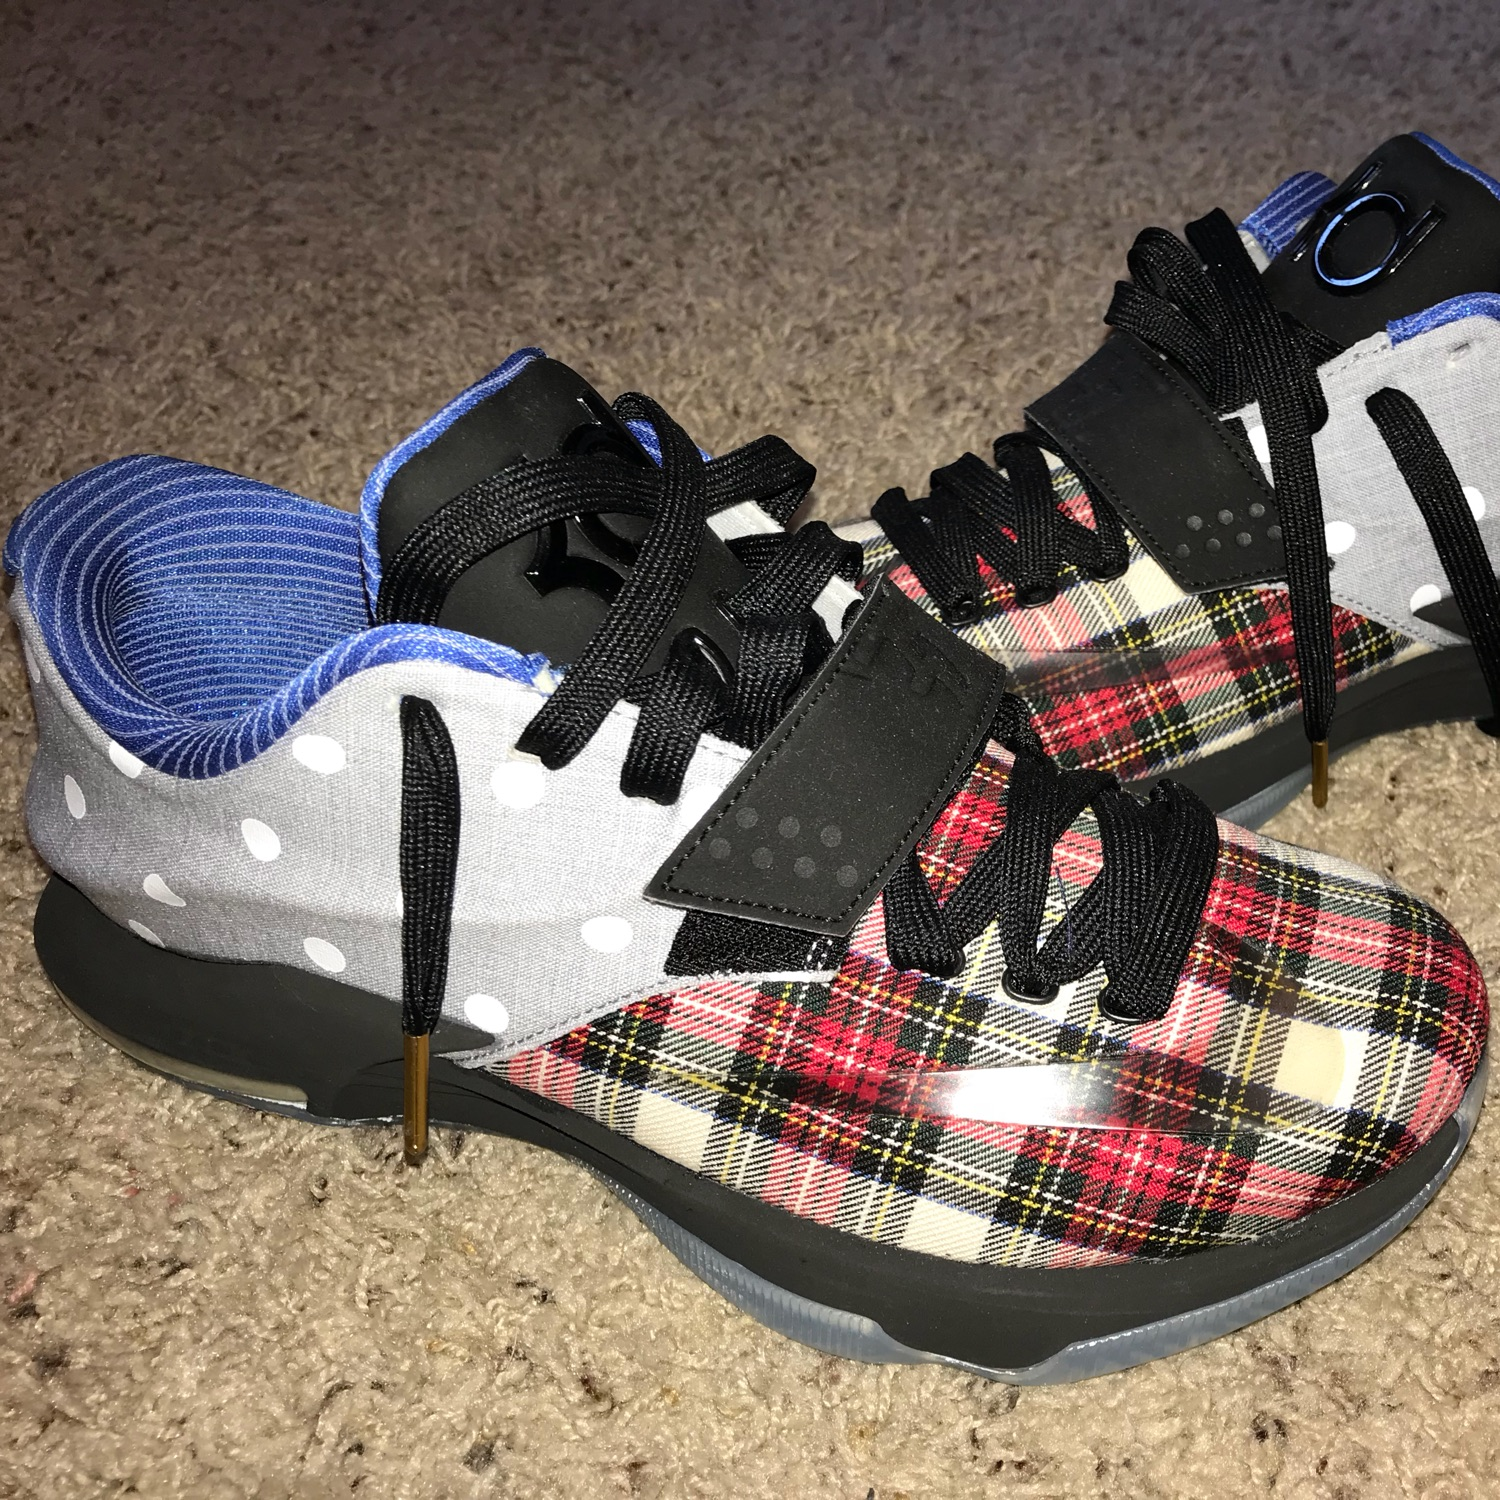 sports shoes 69c7f 1b15f Kd 7 Ext Plaid And Polka Dot